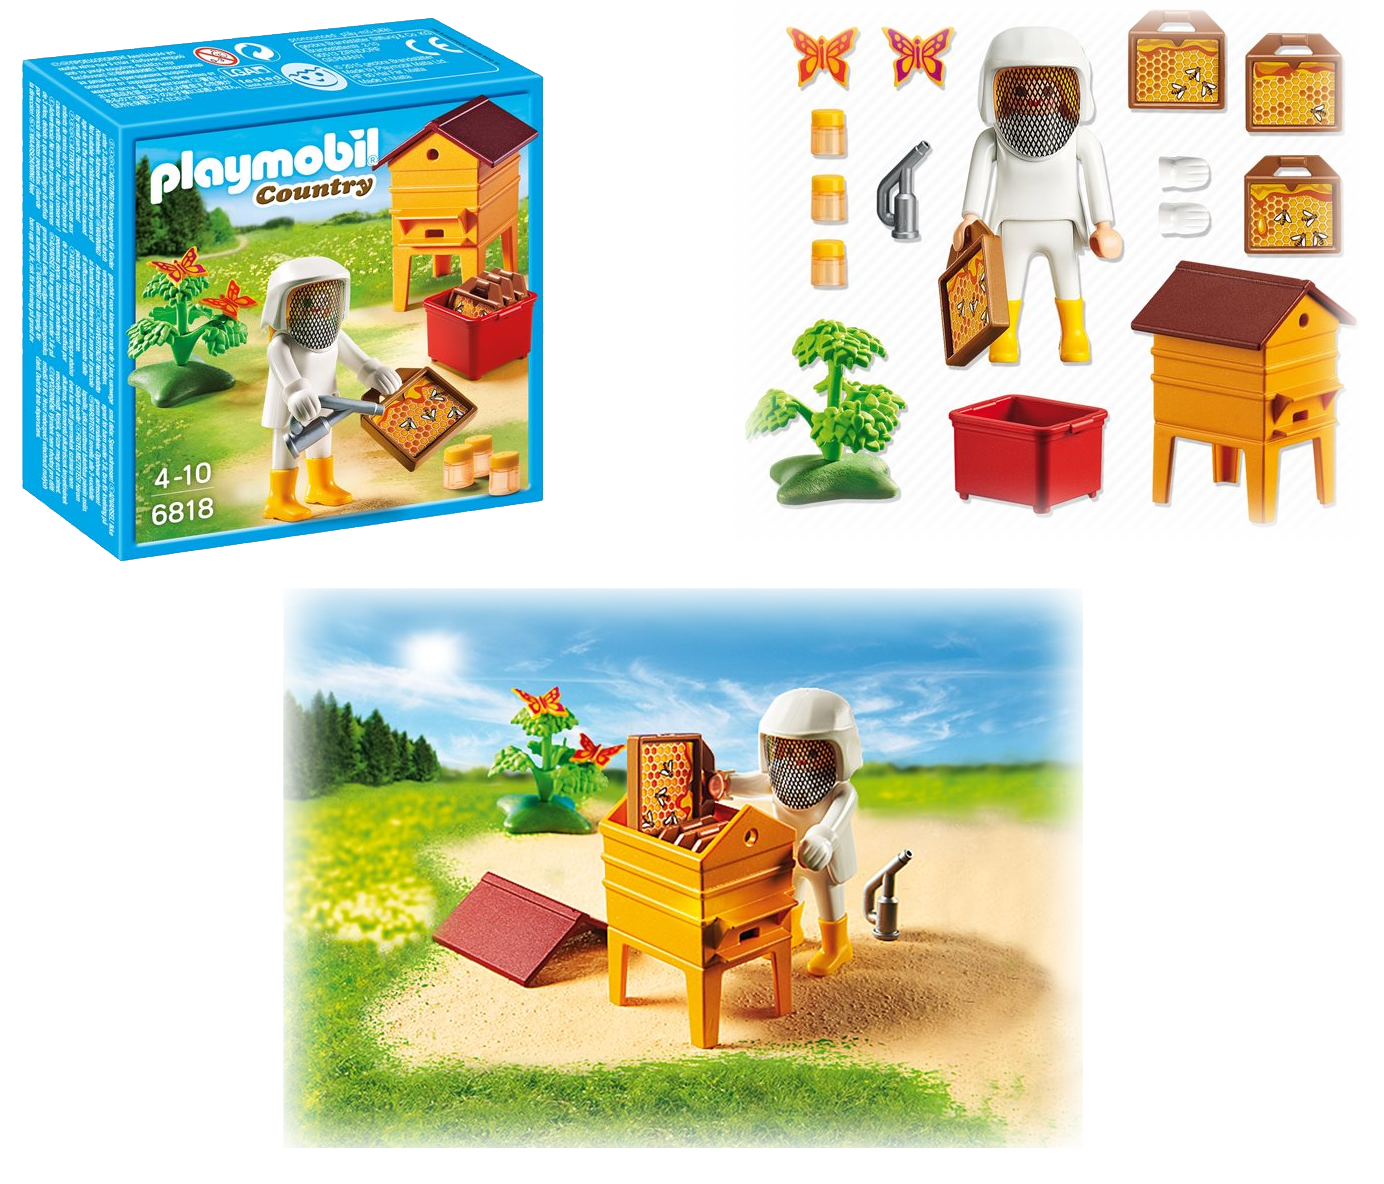 00RE69 Apicultrice PlayMobil